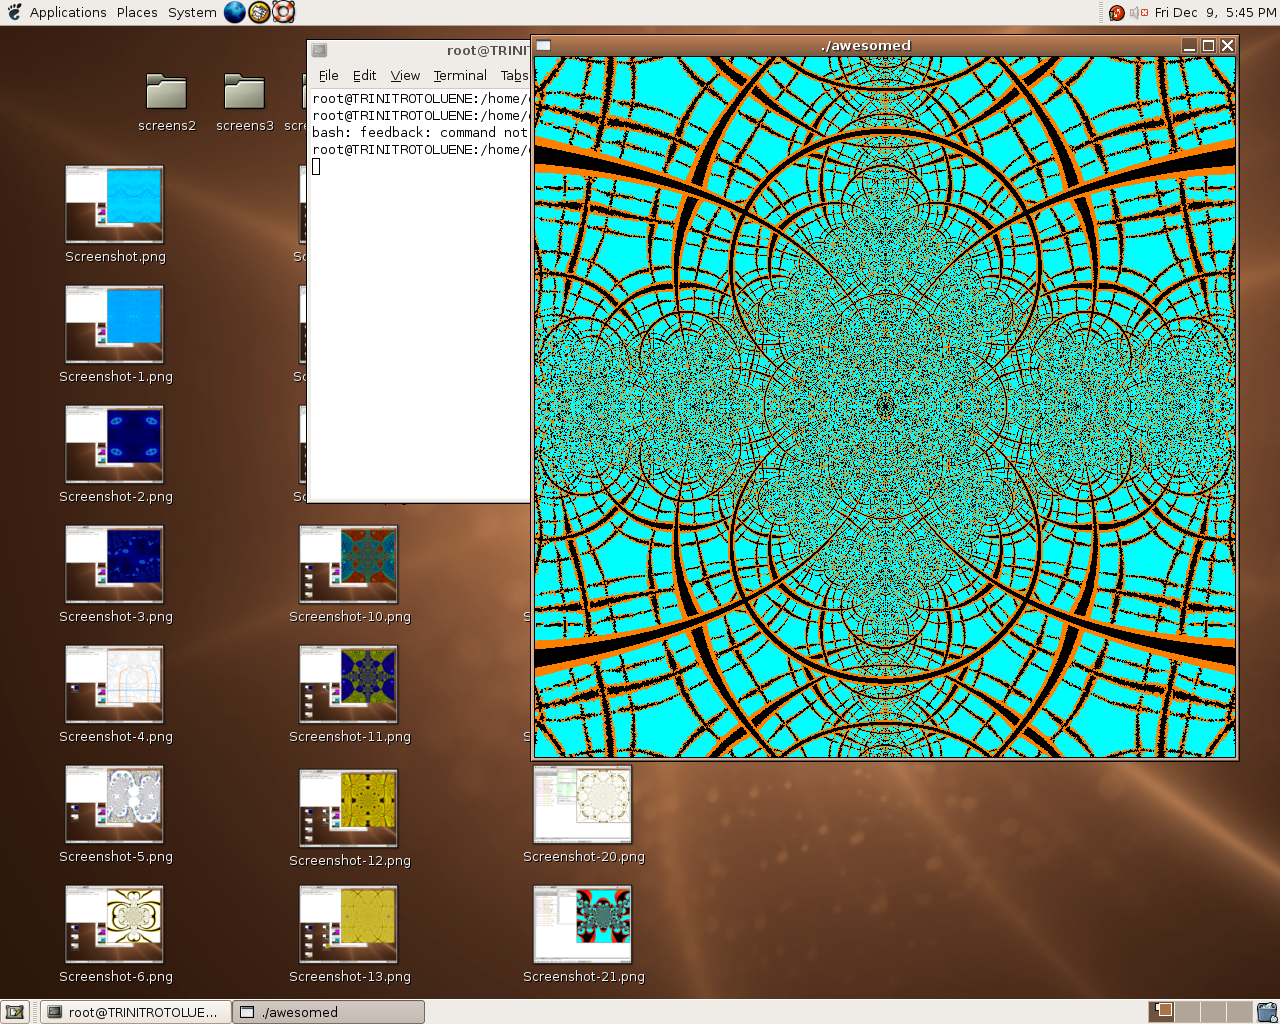 here is a fractal - 5